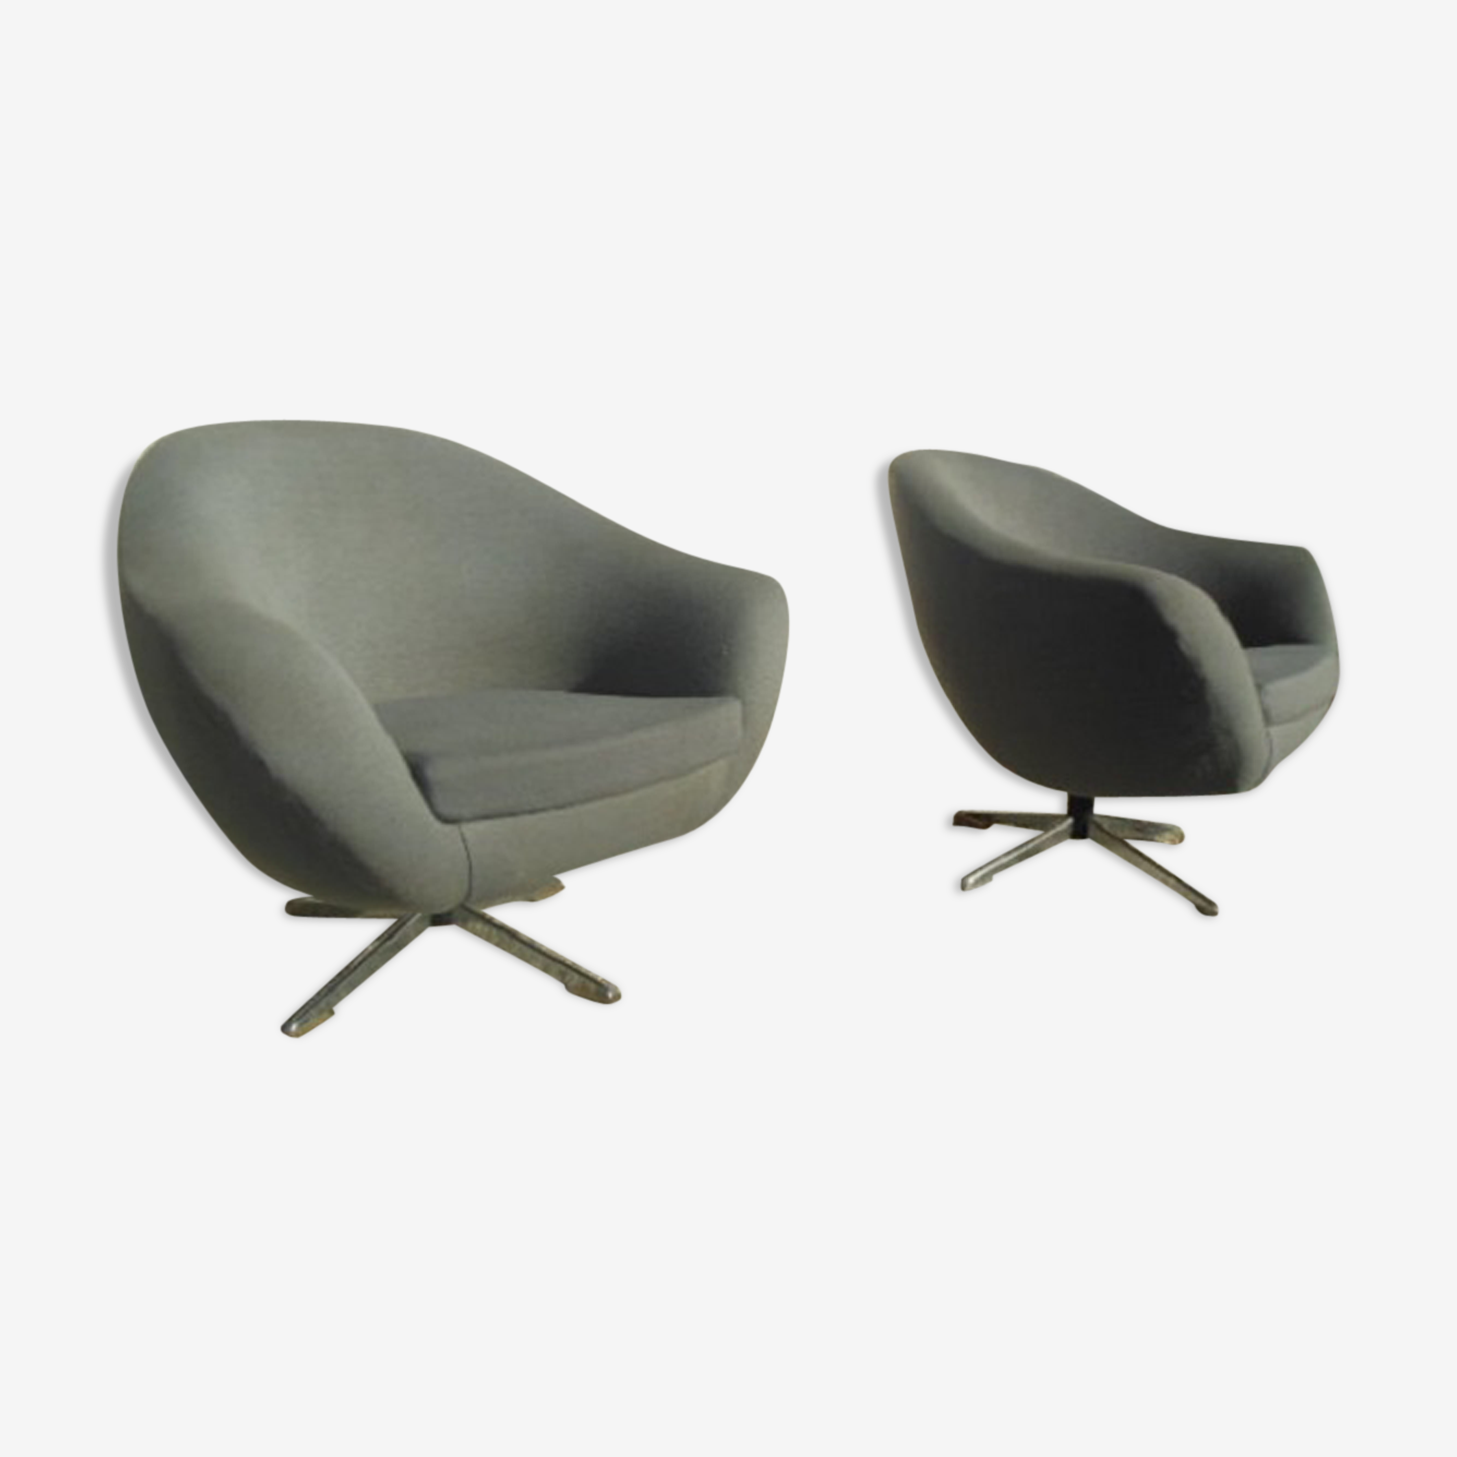 Year 70 vintage shell chairs